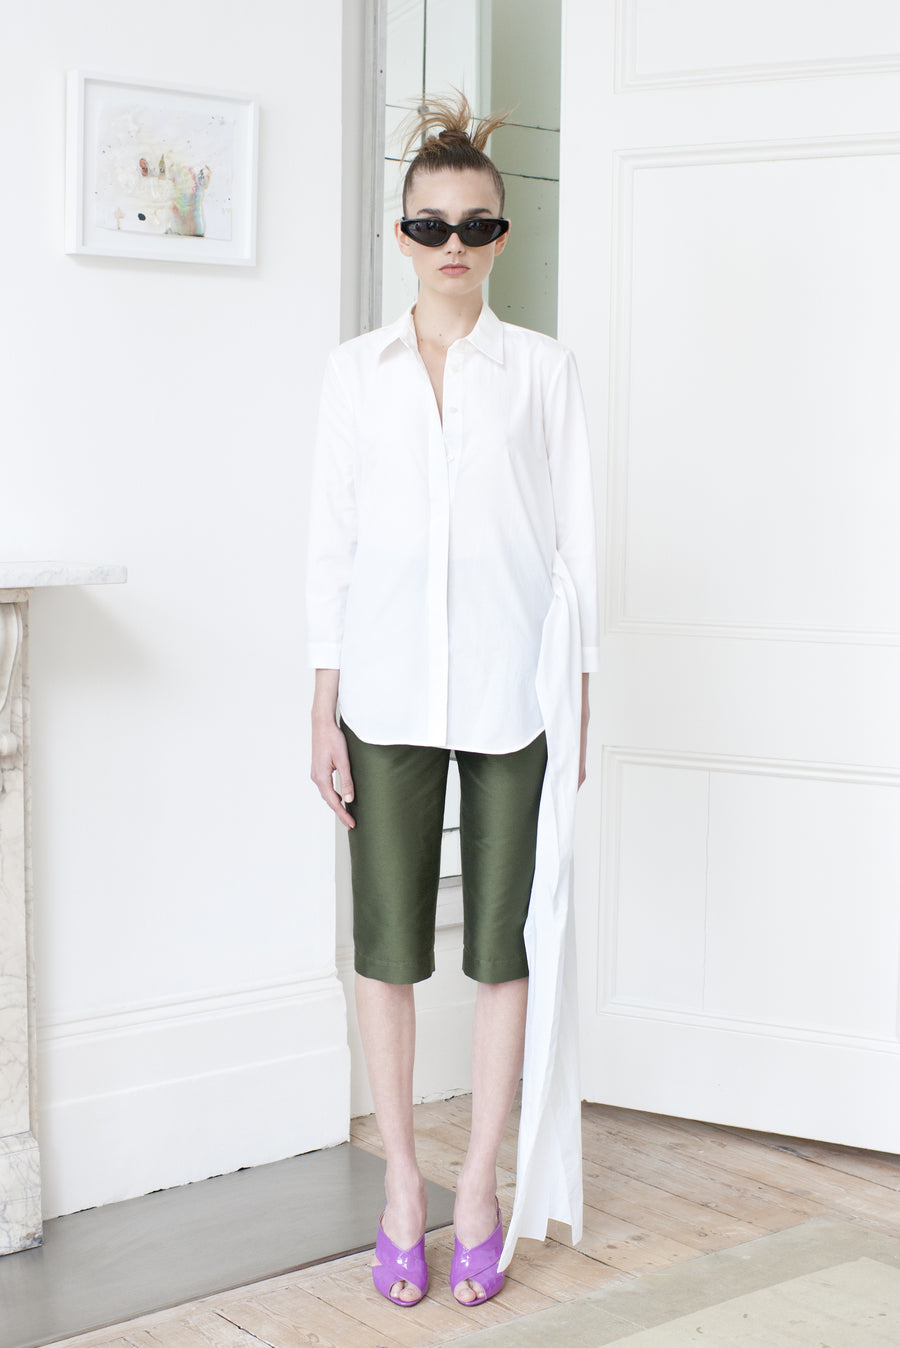 SS2016 / Look 18